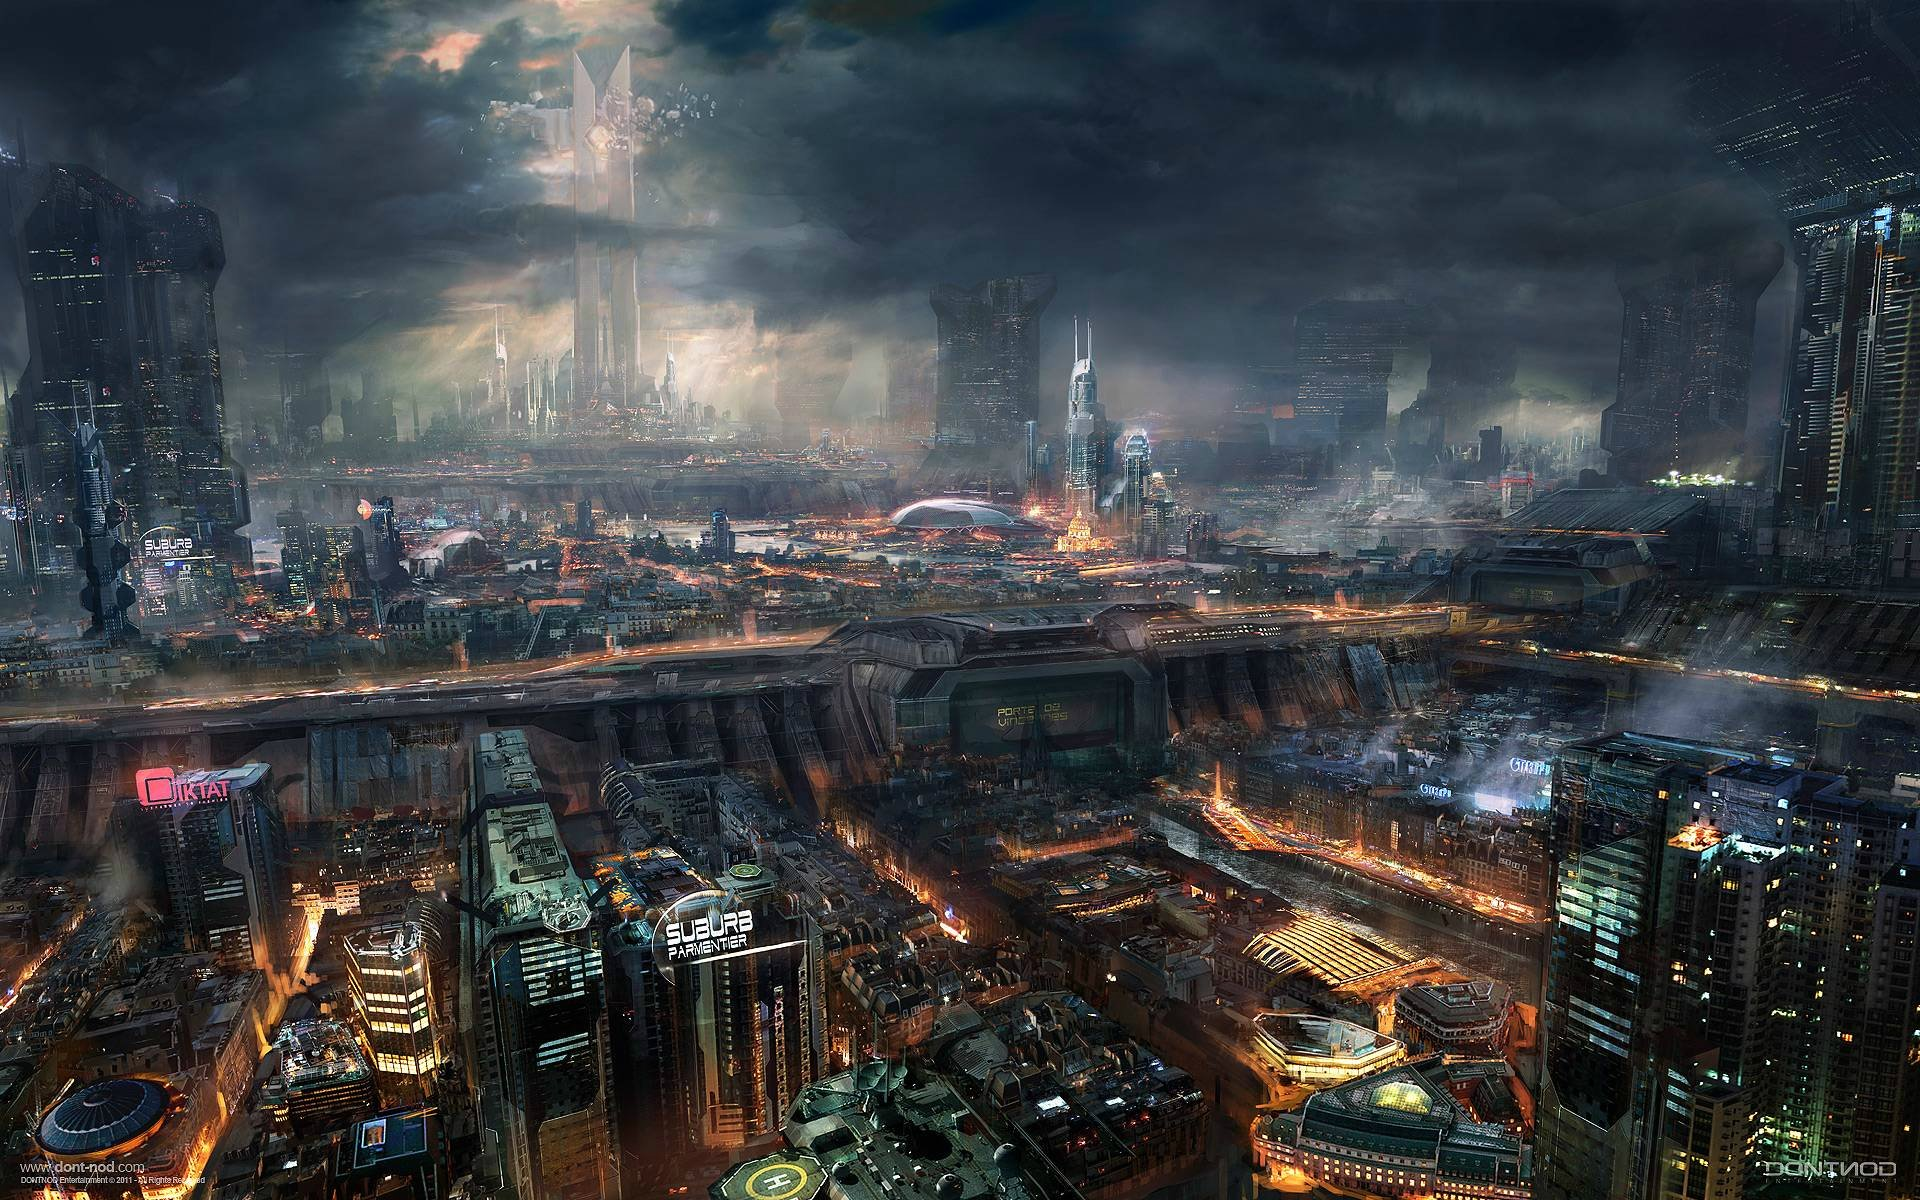 147 cyberpunk hd wallpapers background images wallpaper abyss hd wallpaper background image id159081 voltagebd Choice Image